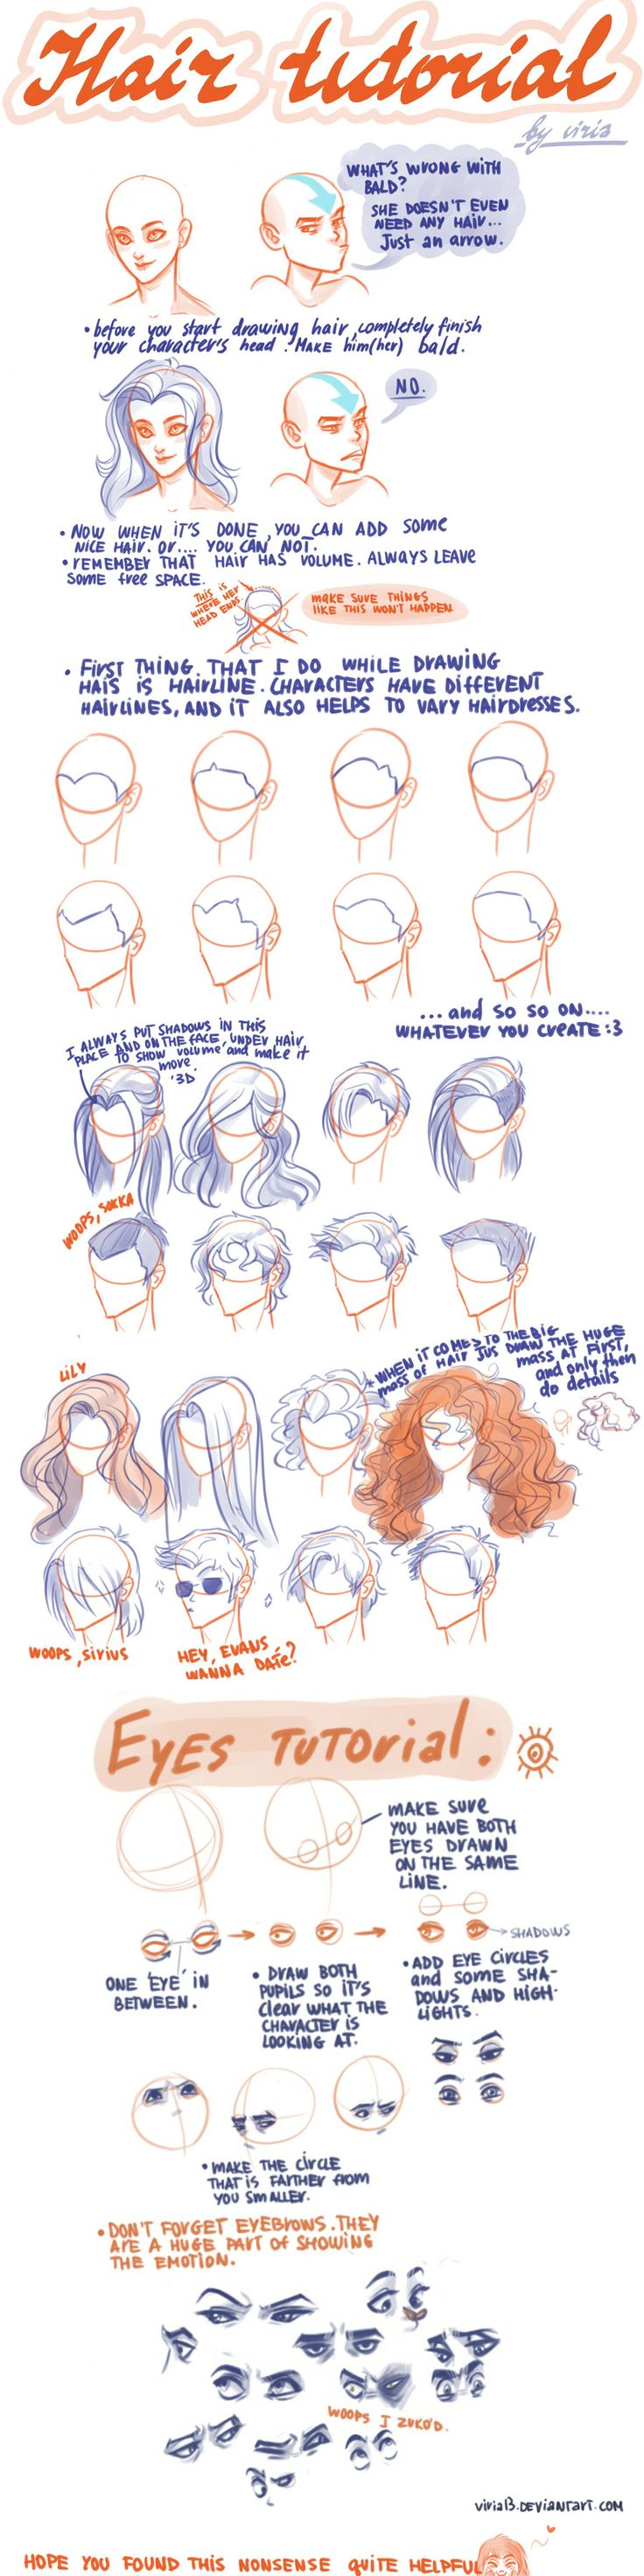 hair-eyes tutorial ✤ || CHARACTER DESIGN REFERENCES | キャラクターデザイン • Find more at https://www.facebook.com/CharacterDesign